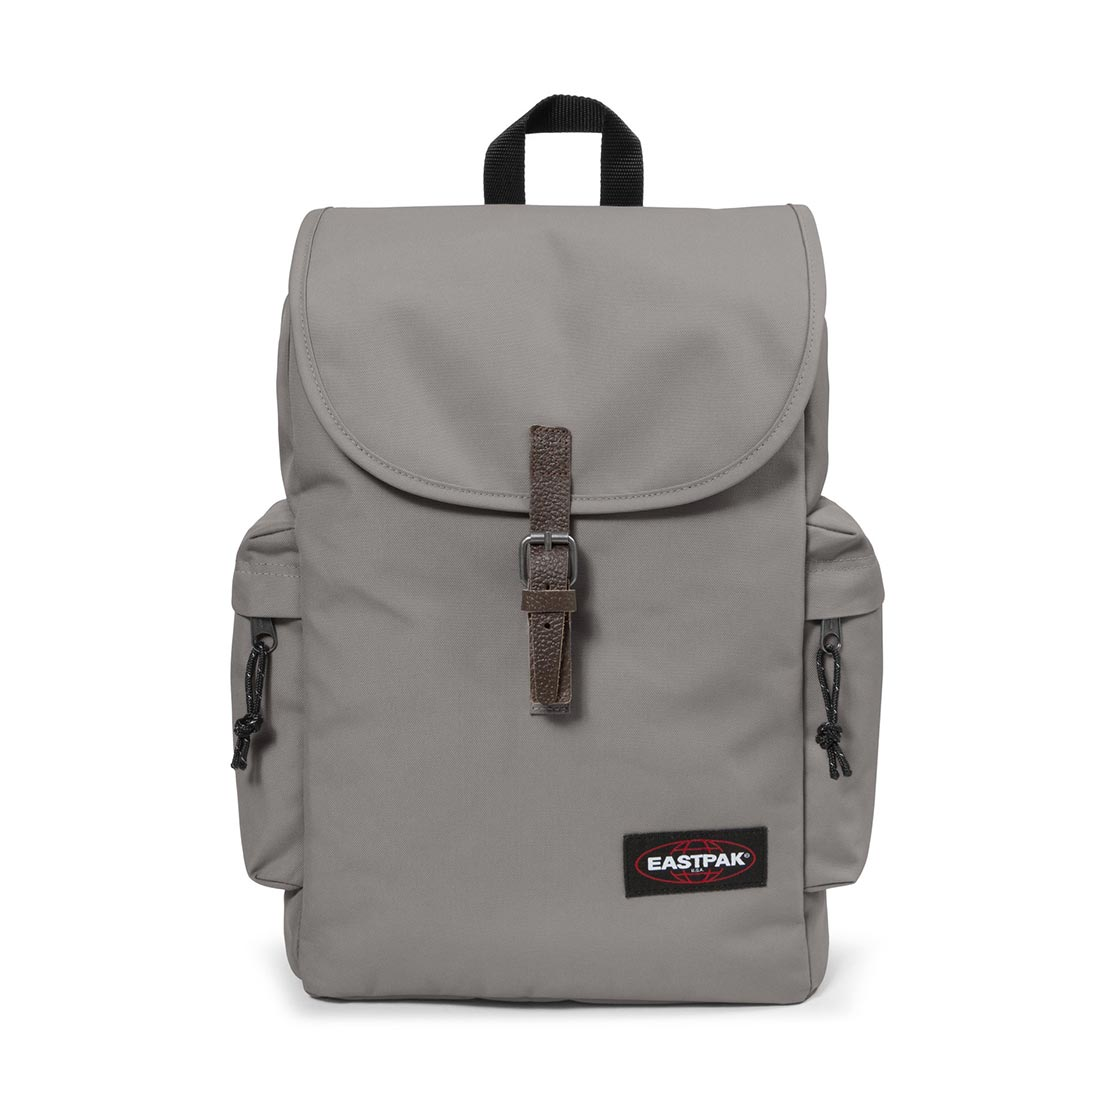 Eastpak Austin 18L Backpack - Concrete Grey